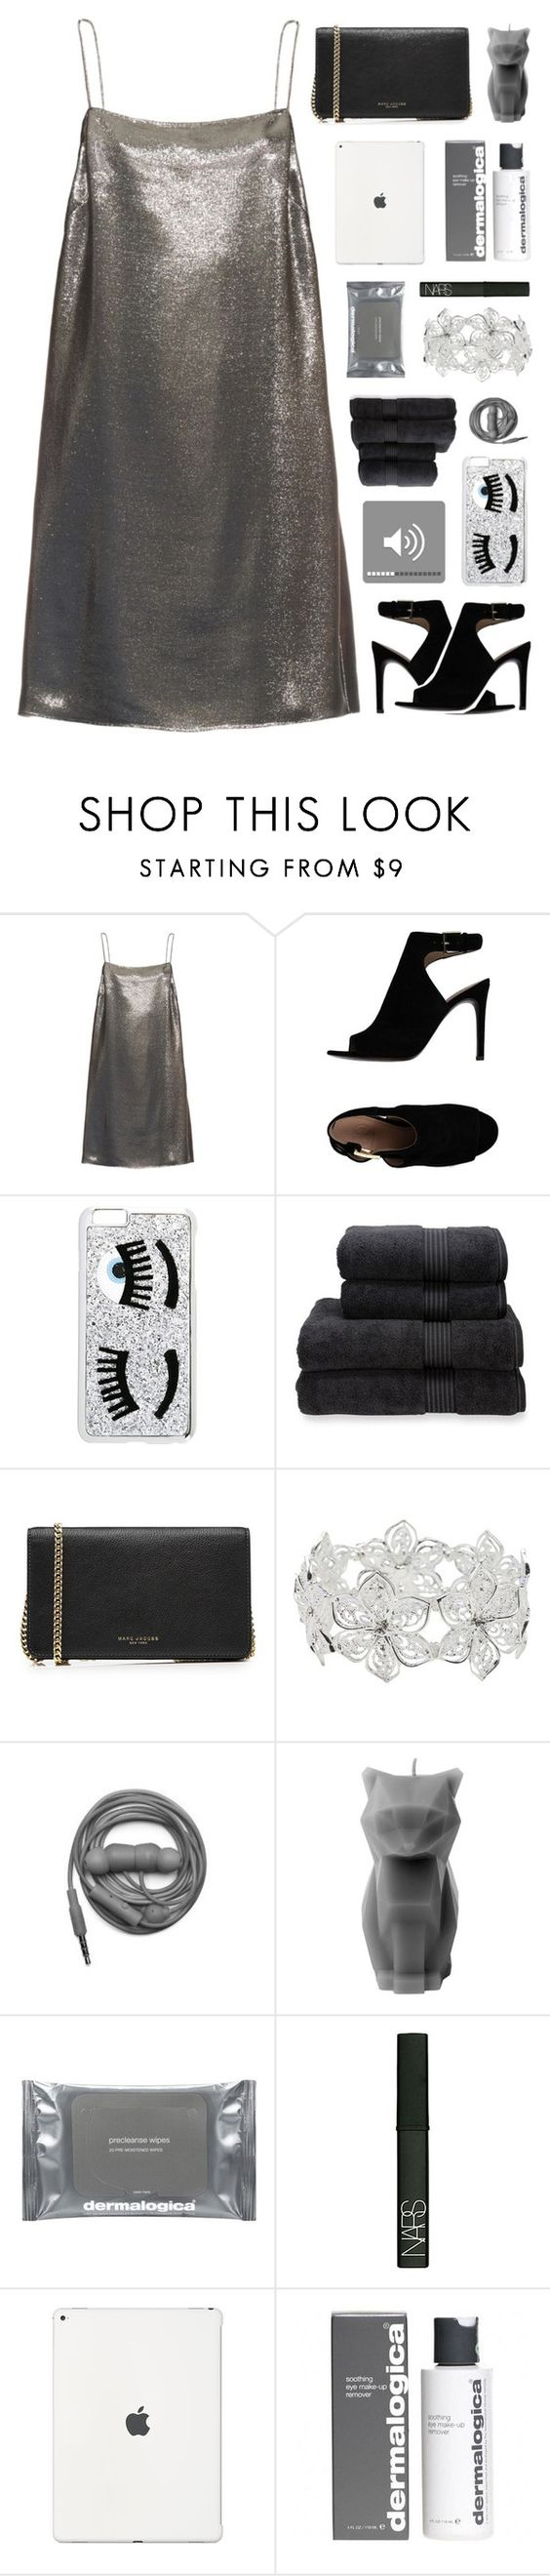 """Call me on my cell phone"" by tiaranurindaa ❤ liked on Polyvore featuring Yves Saint Laurent, Tory Burch, Chiara Ferragni, Christy, Marc Jacobs, M&Co, Urbanears, PyroPet, Dermalogica and NARS Cosmetics"